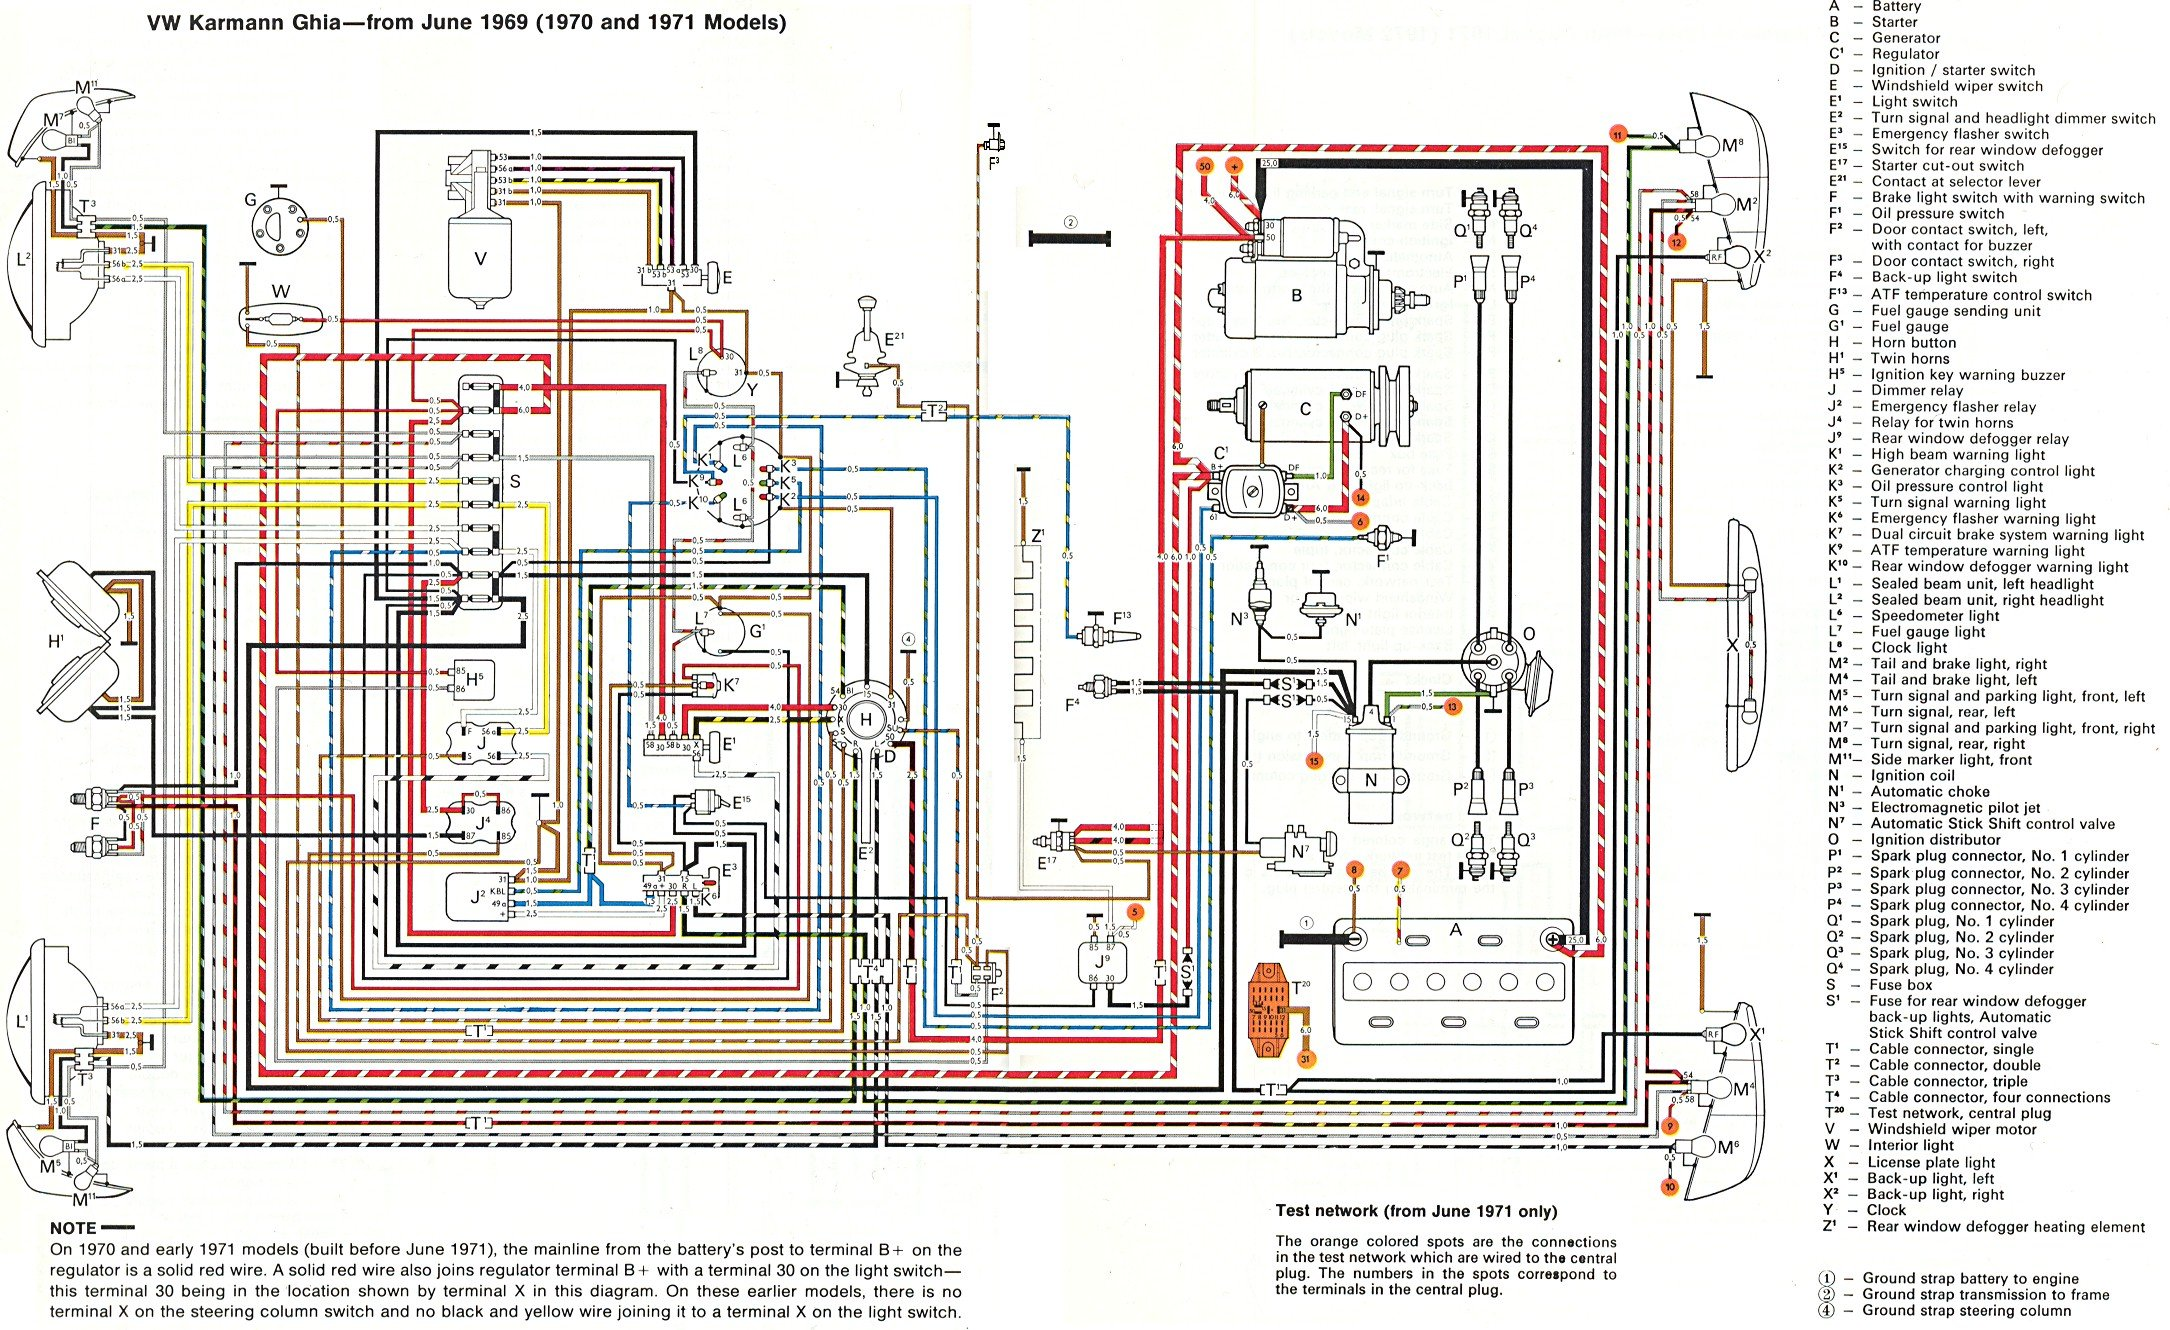 Karmann Ghia Engine Wiring Diagrams - DATA WIRING DIAGRAM •